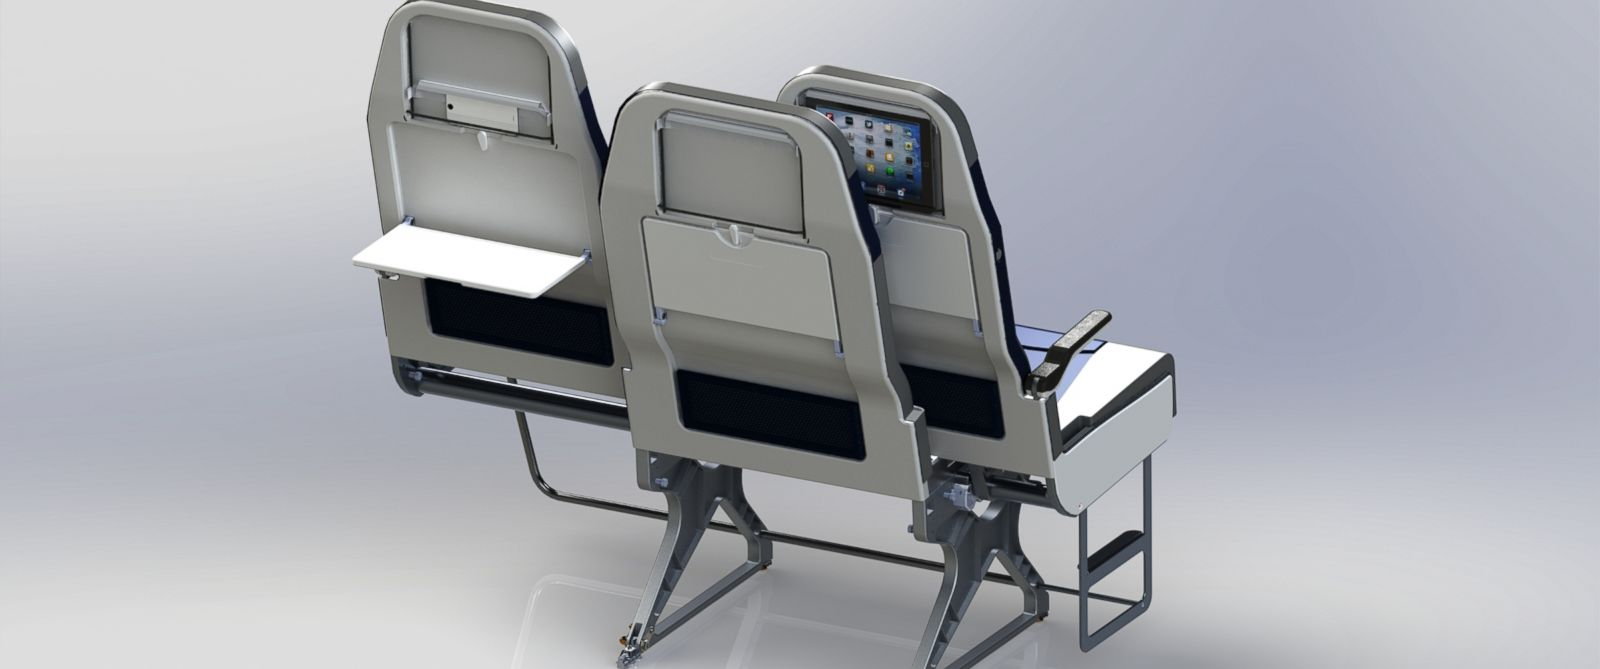 New Airline Seating Could Change The Way We Board Planes